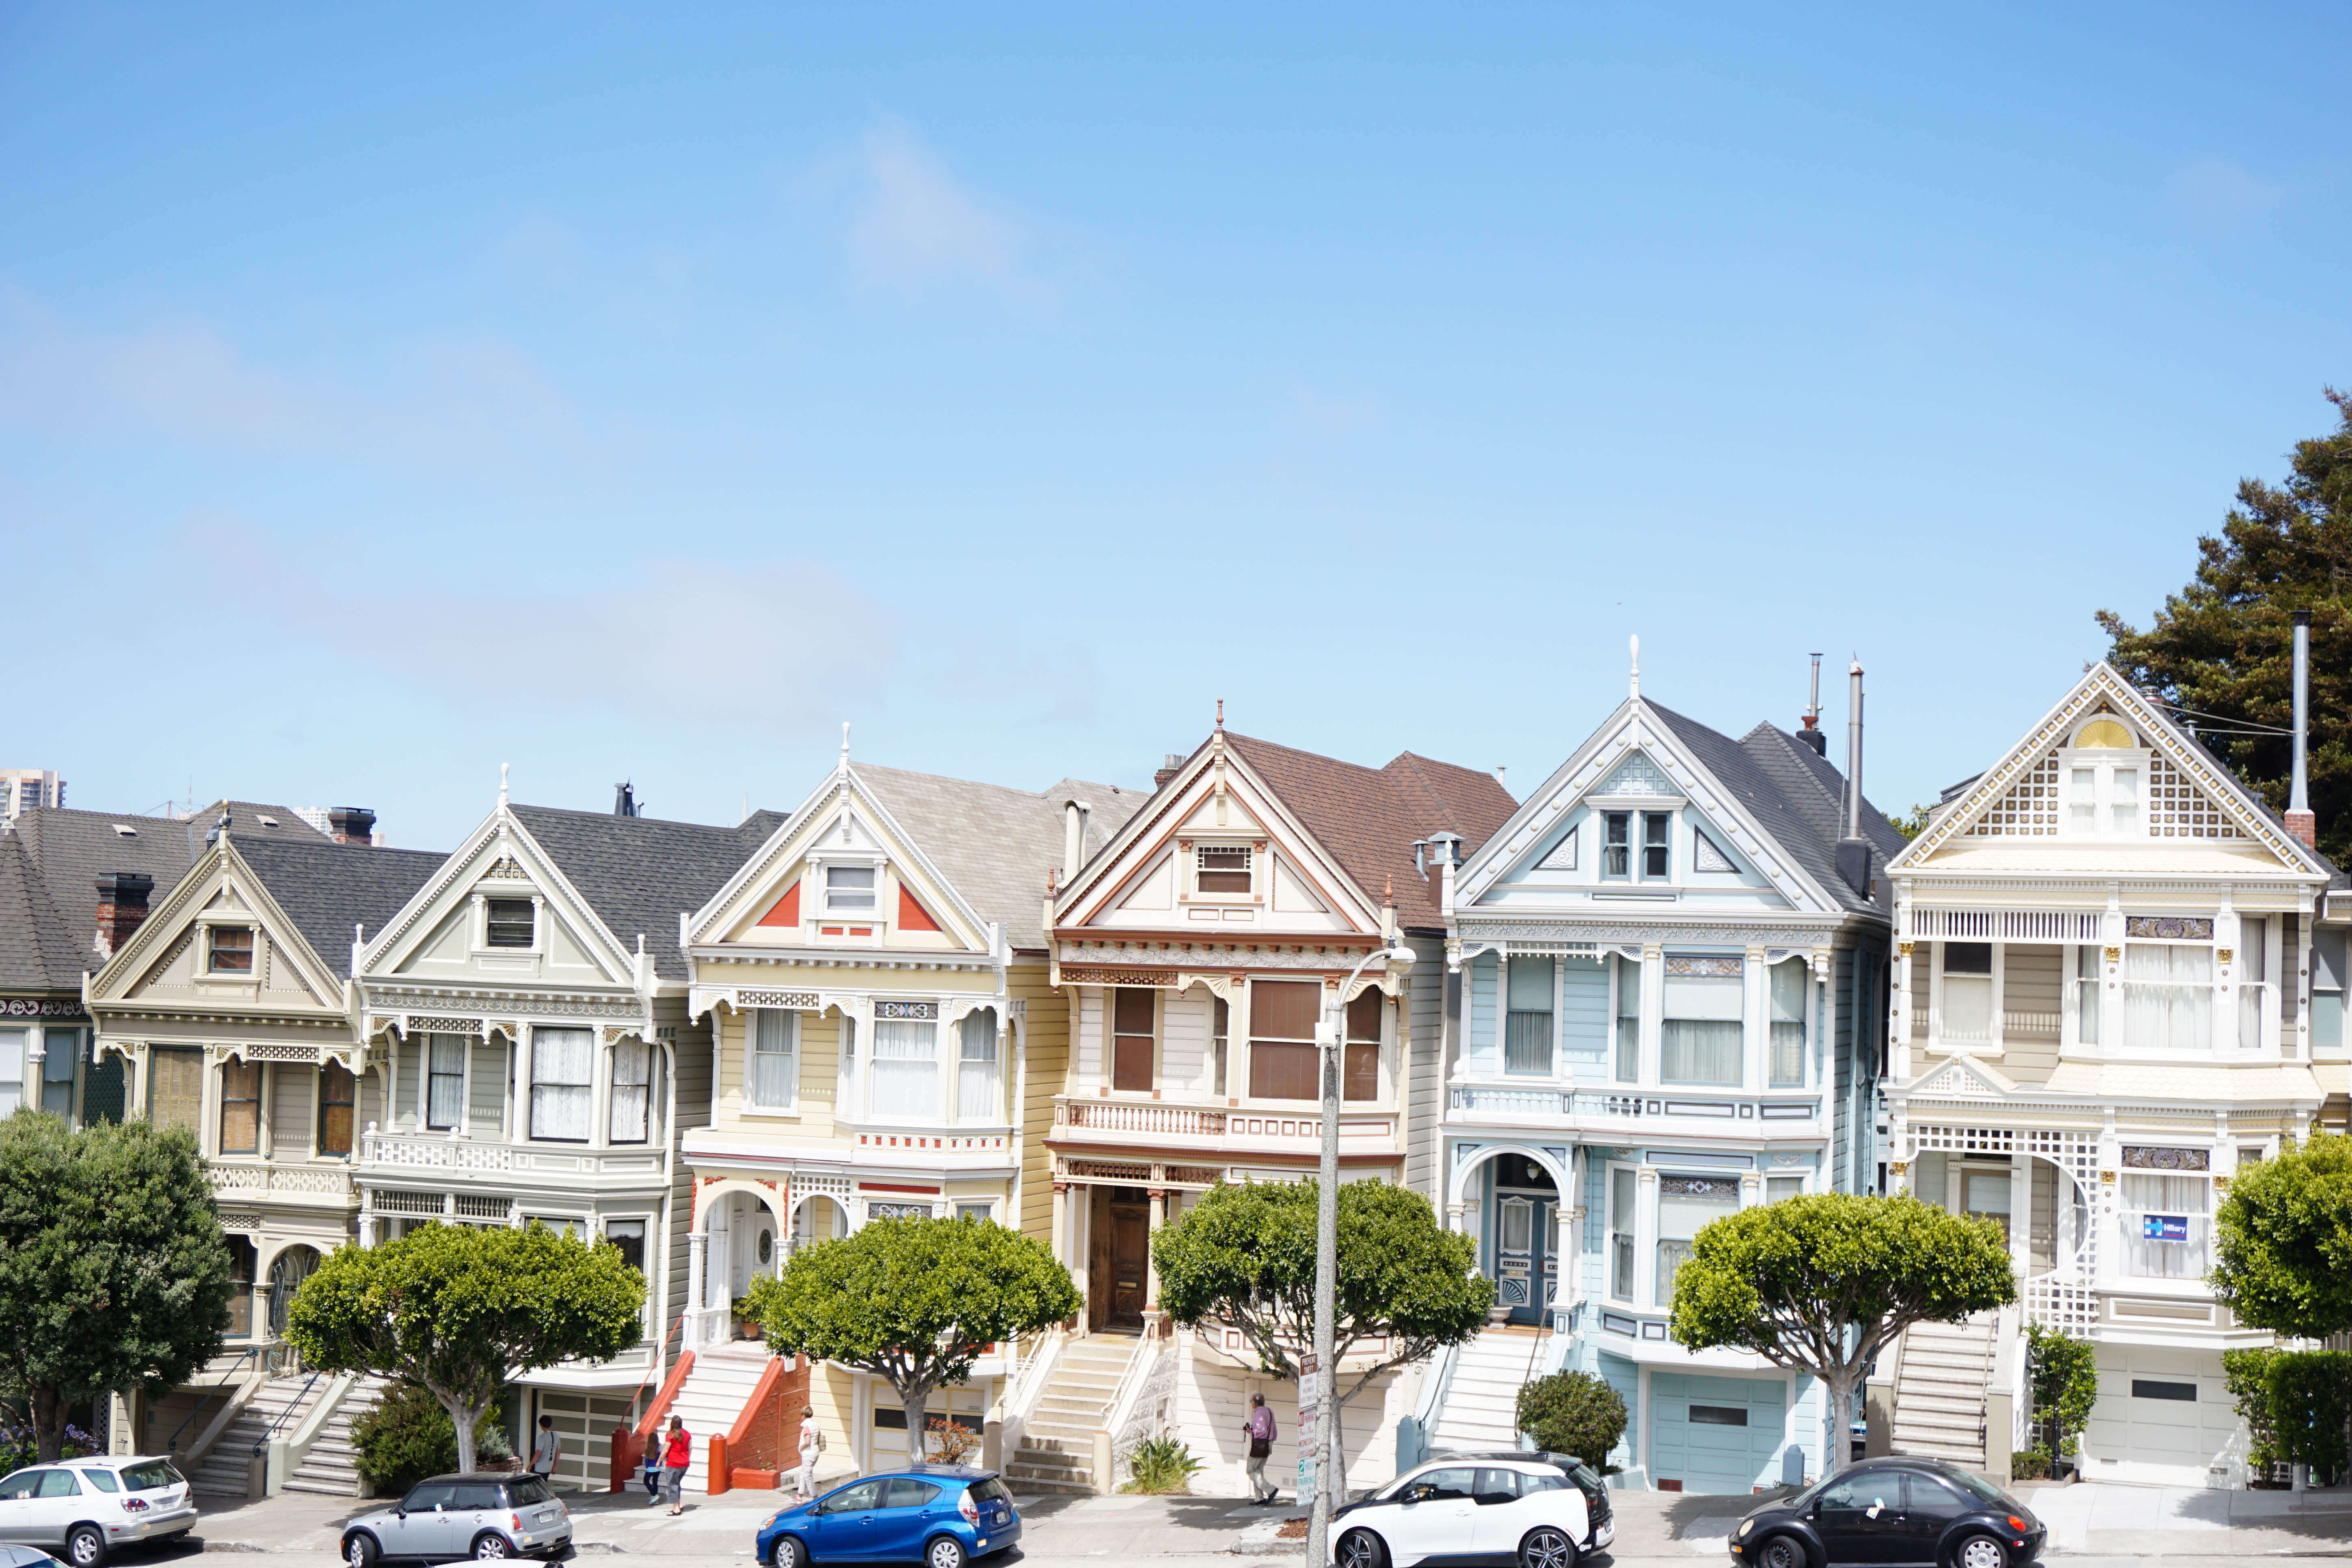 Vacation, here I come! What to eat, drink, and do in San Francisco.